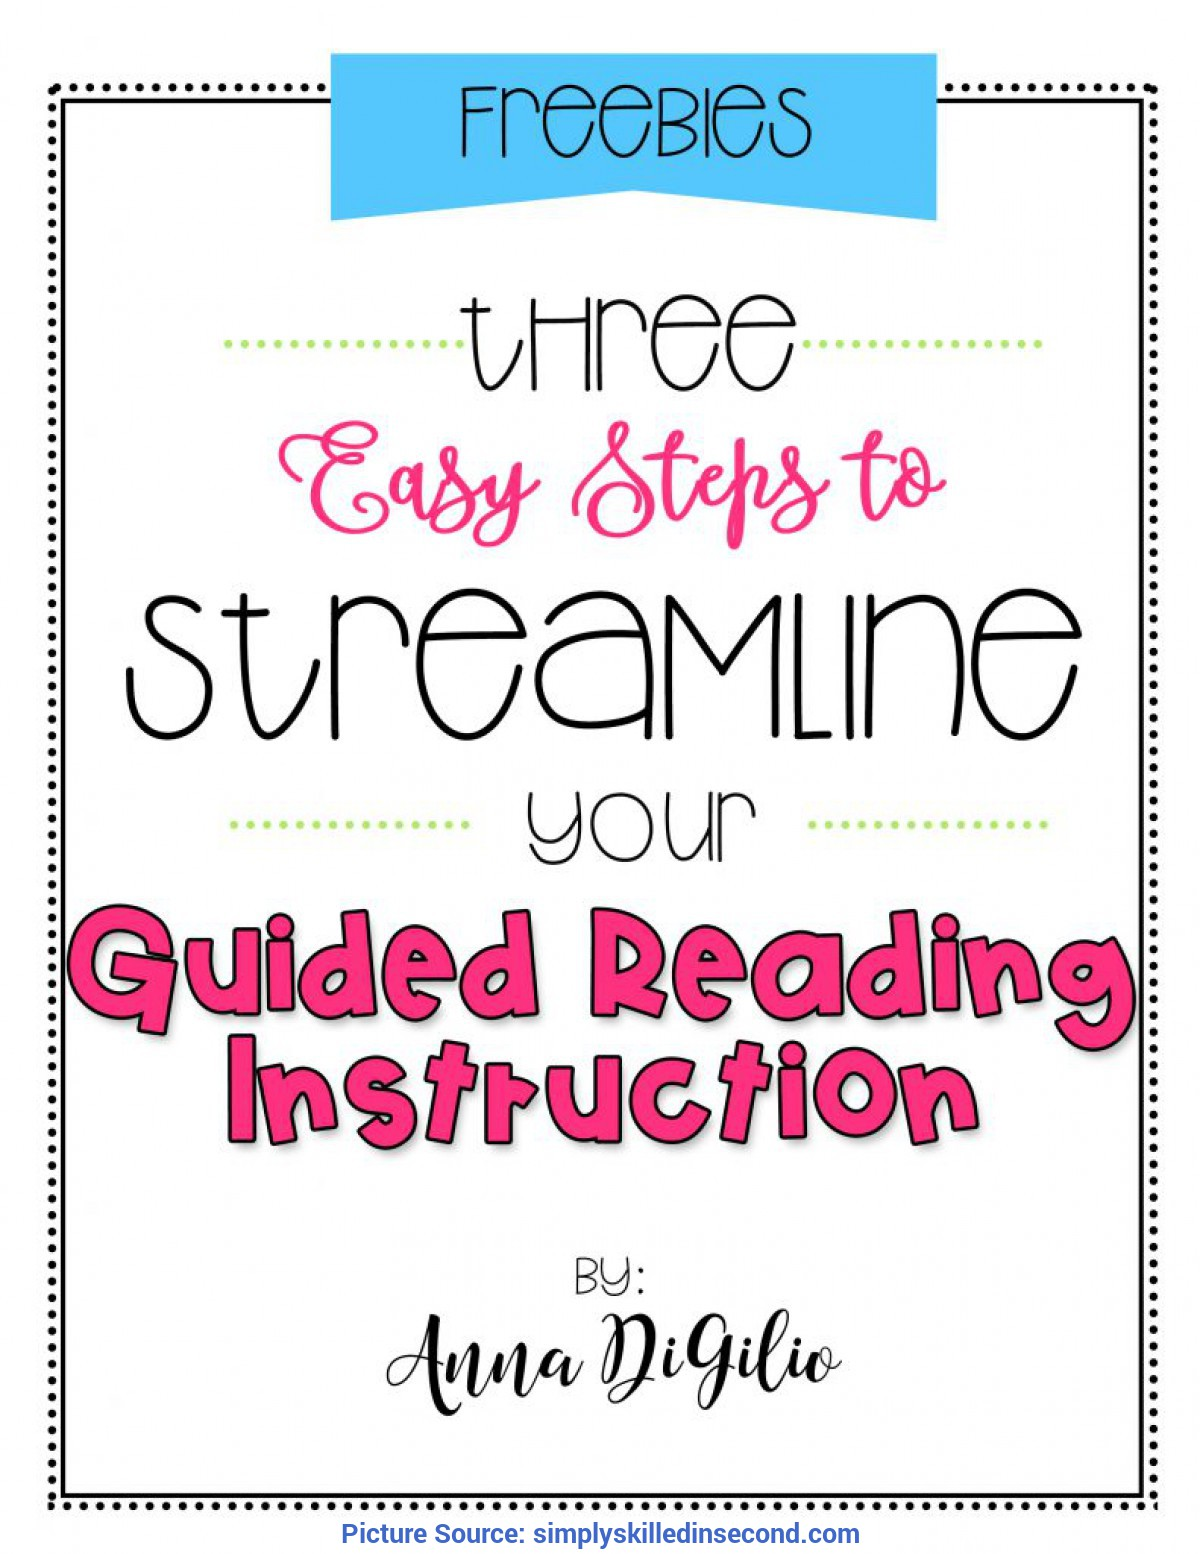 Fresh Guided Reading Steps 3 Easy Steps To Streamline Your Guided Reading Instructio